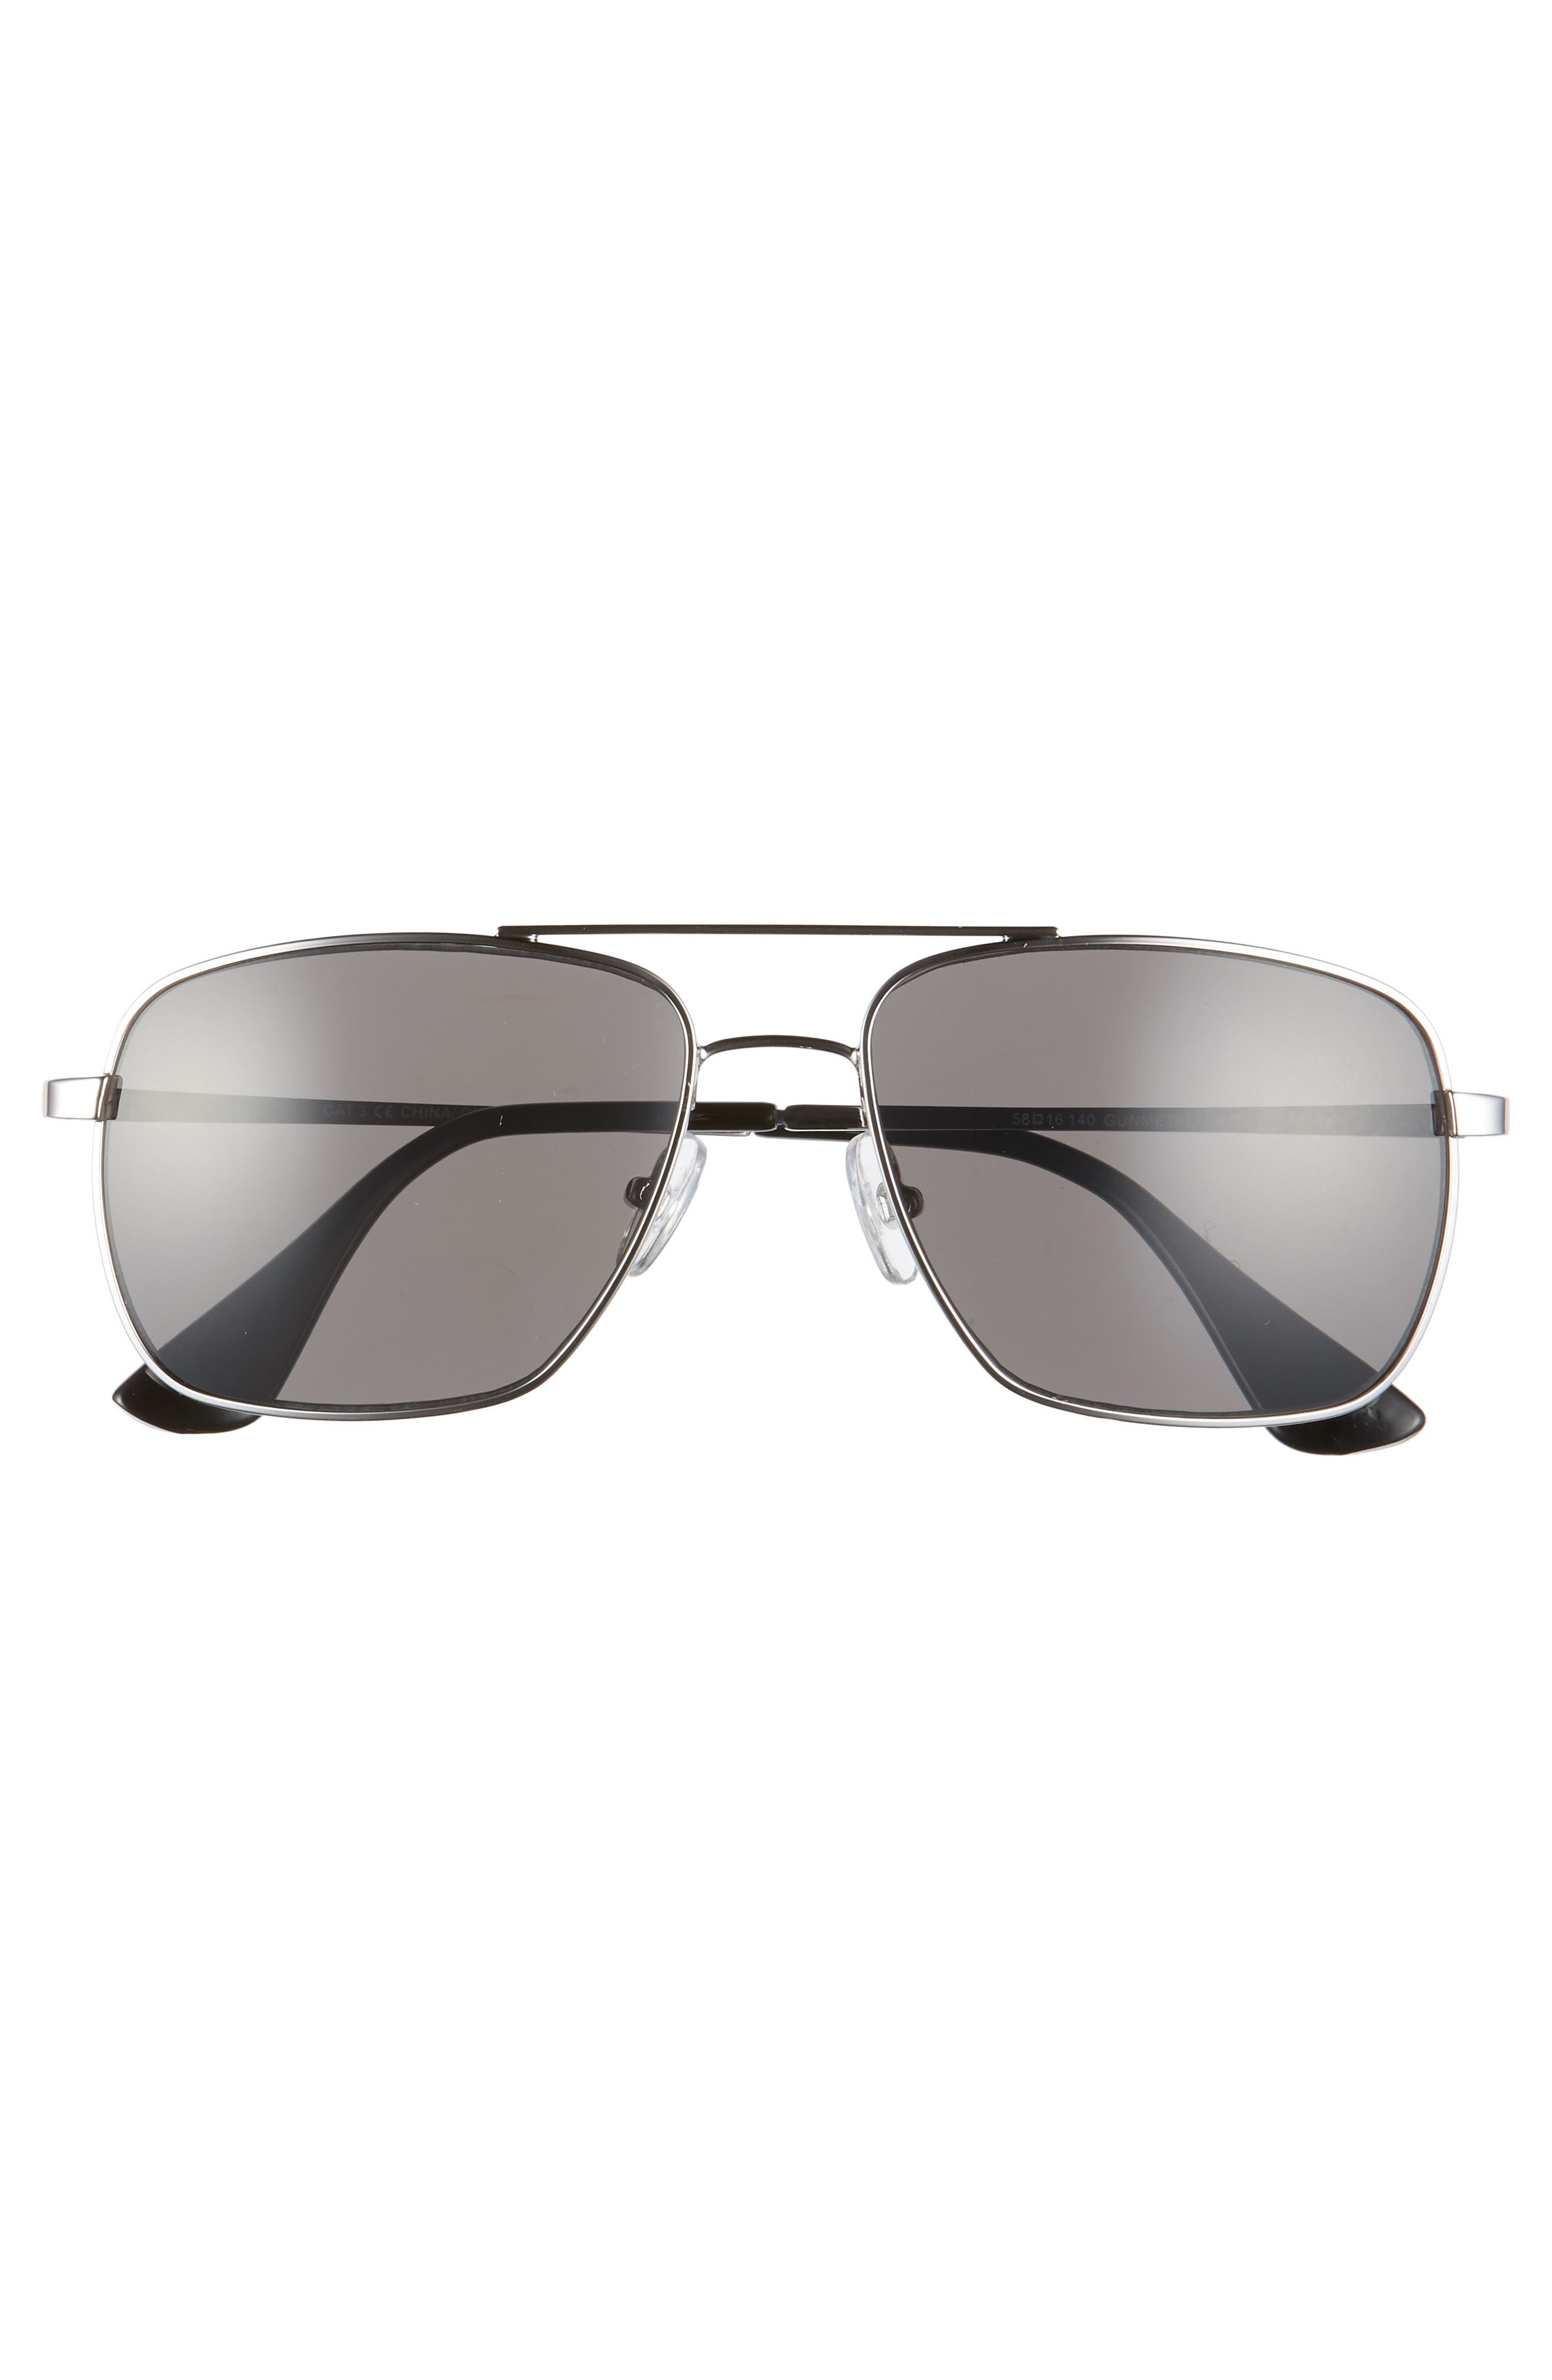 Taylor 58mm Aviator Sunglasses,                             Alternate thumbnail 2, color,                             GUNMETAL/ GREY